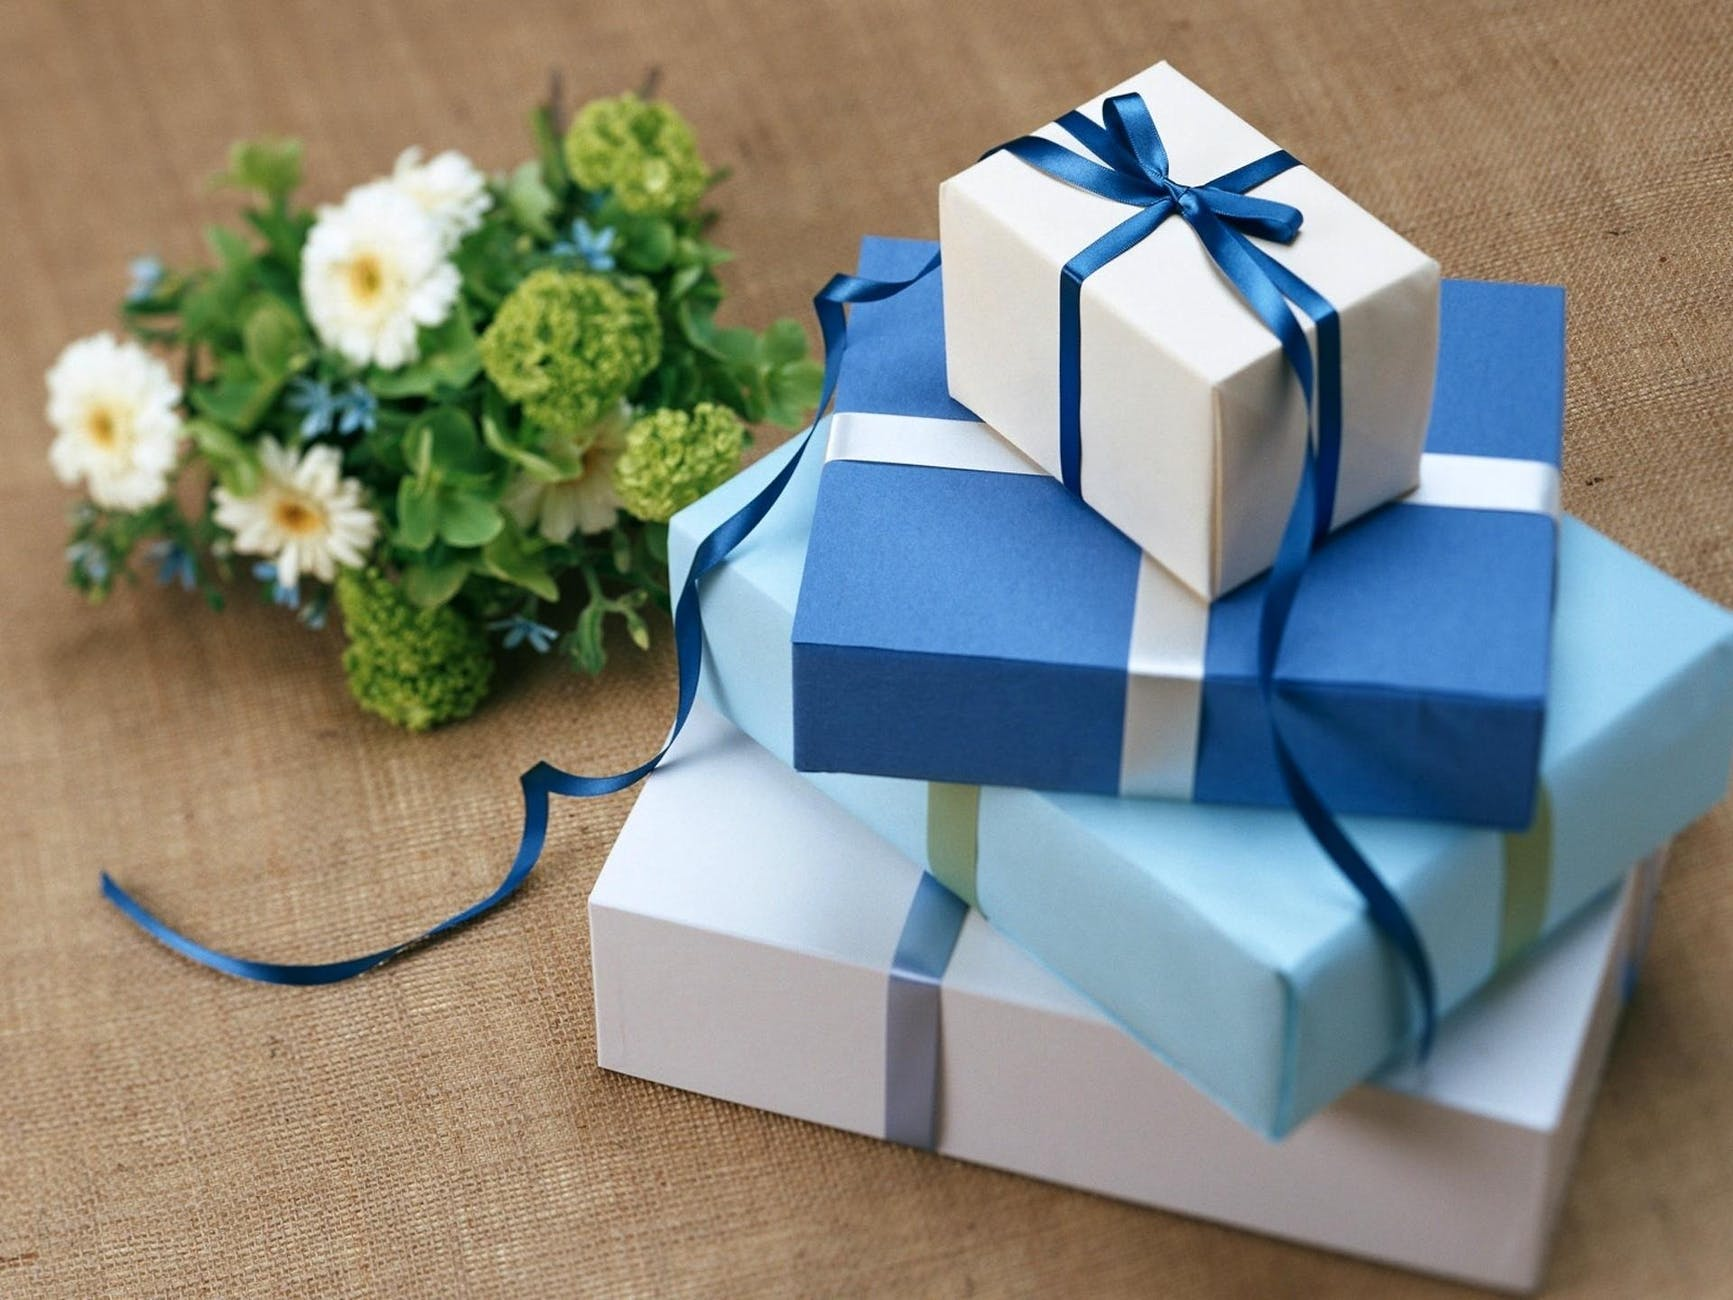 gift ideas, Gift ideas to surprise your adorable dad on the coming father's day 2020